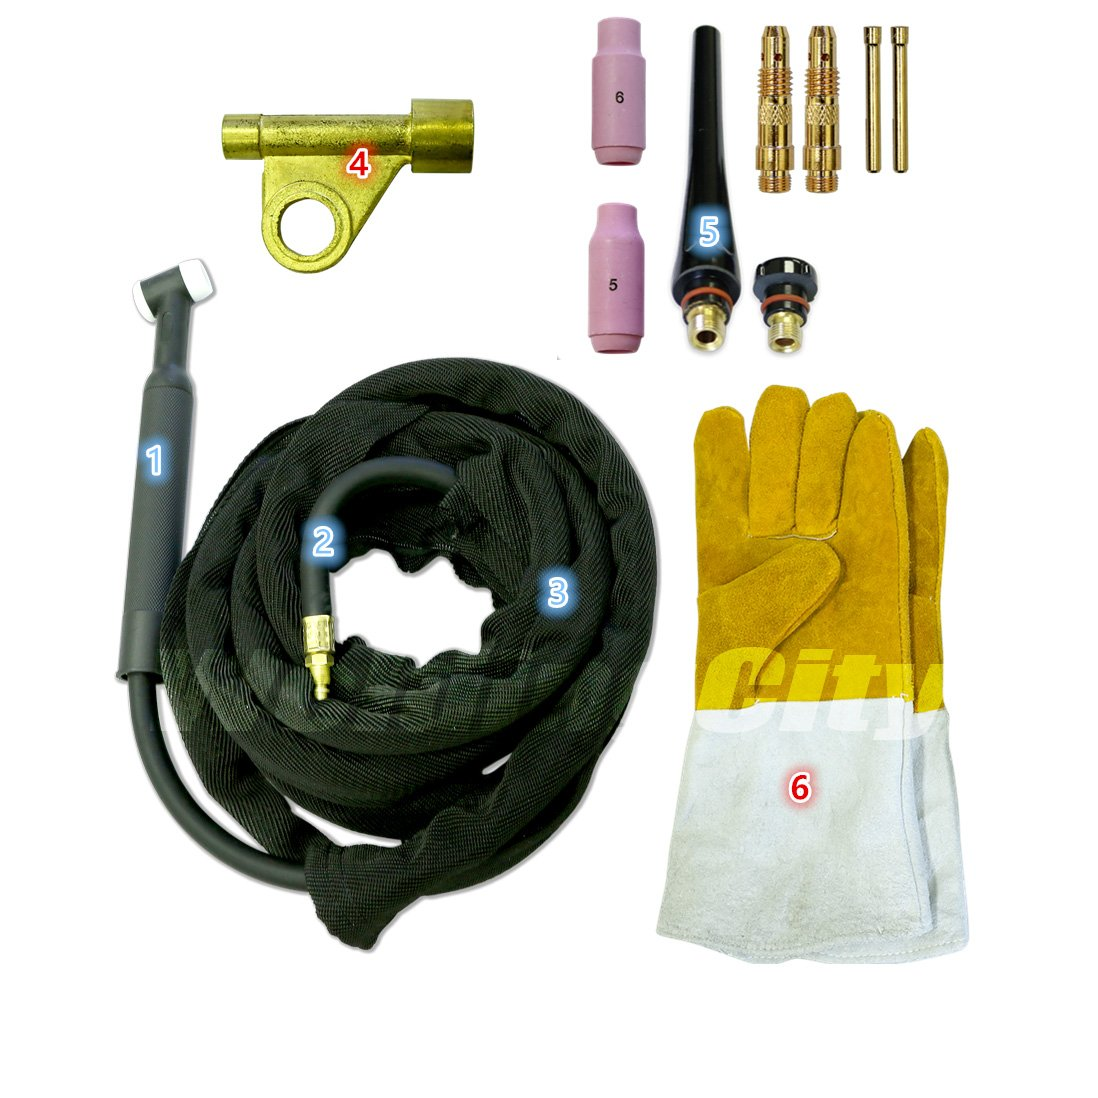 Flexible Head WeldingCity TIG Welding Torch WP-17F-25R Complete Ready-to-Go Package Air-Cool 25-foot Cable 150Amp w//Gift